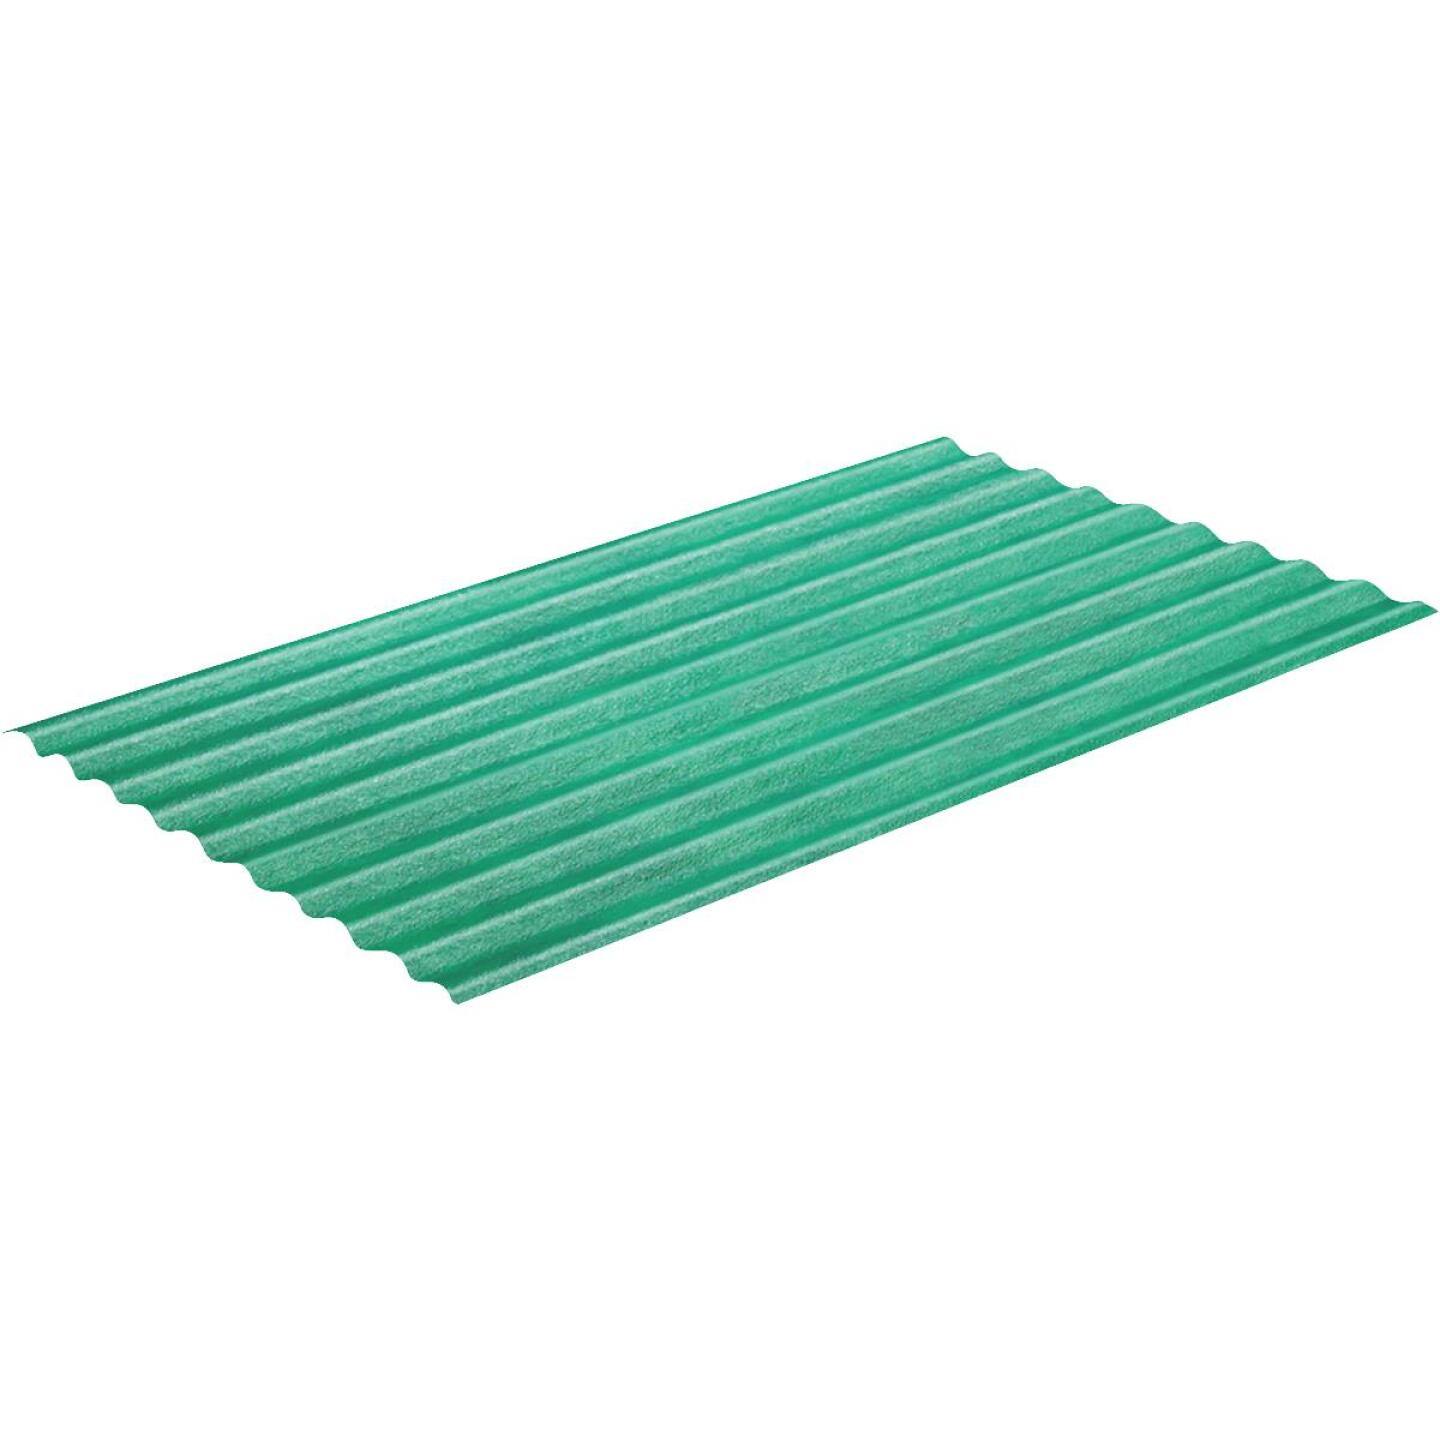 Sequentia WeatherGlaze 26 In. x 10 Ft. Green Round 1-Sided Fiberglass Corrugated Panels Image 1